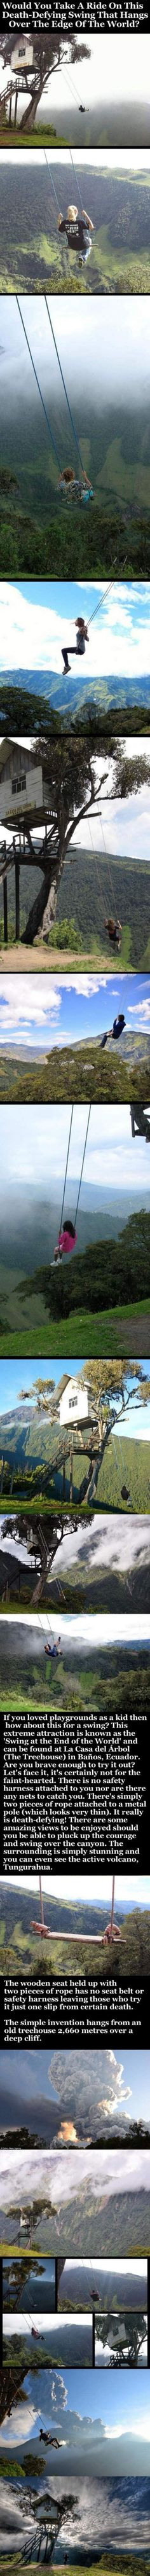 Would You Take A Ride On This Death-Defying Swing That Hangs Over The Edge Of The World? photography fun travel scary vacation adventure amazing traveling interesting vacations nature photography adventure travel adrenaline volvanoes